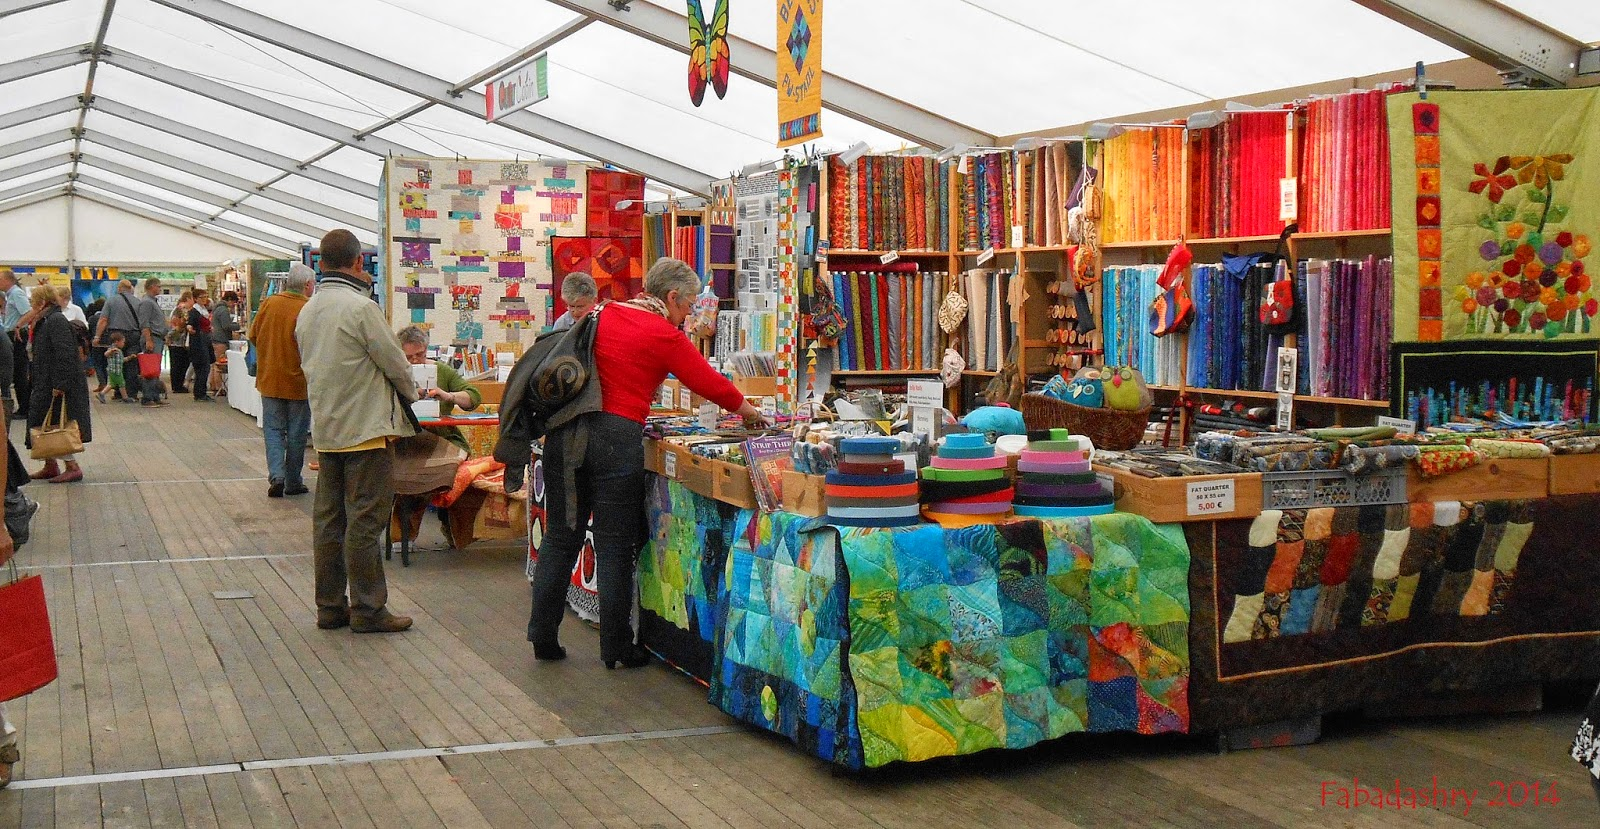 International Quiltfestival in Luxembourg 2014